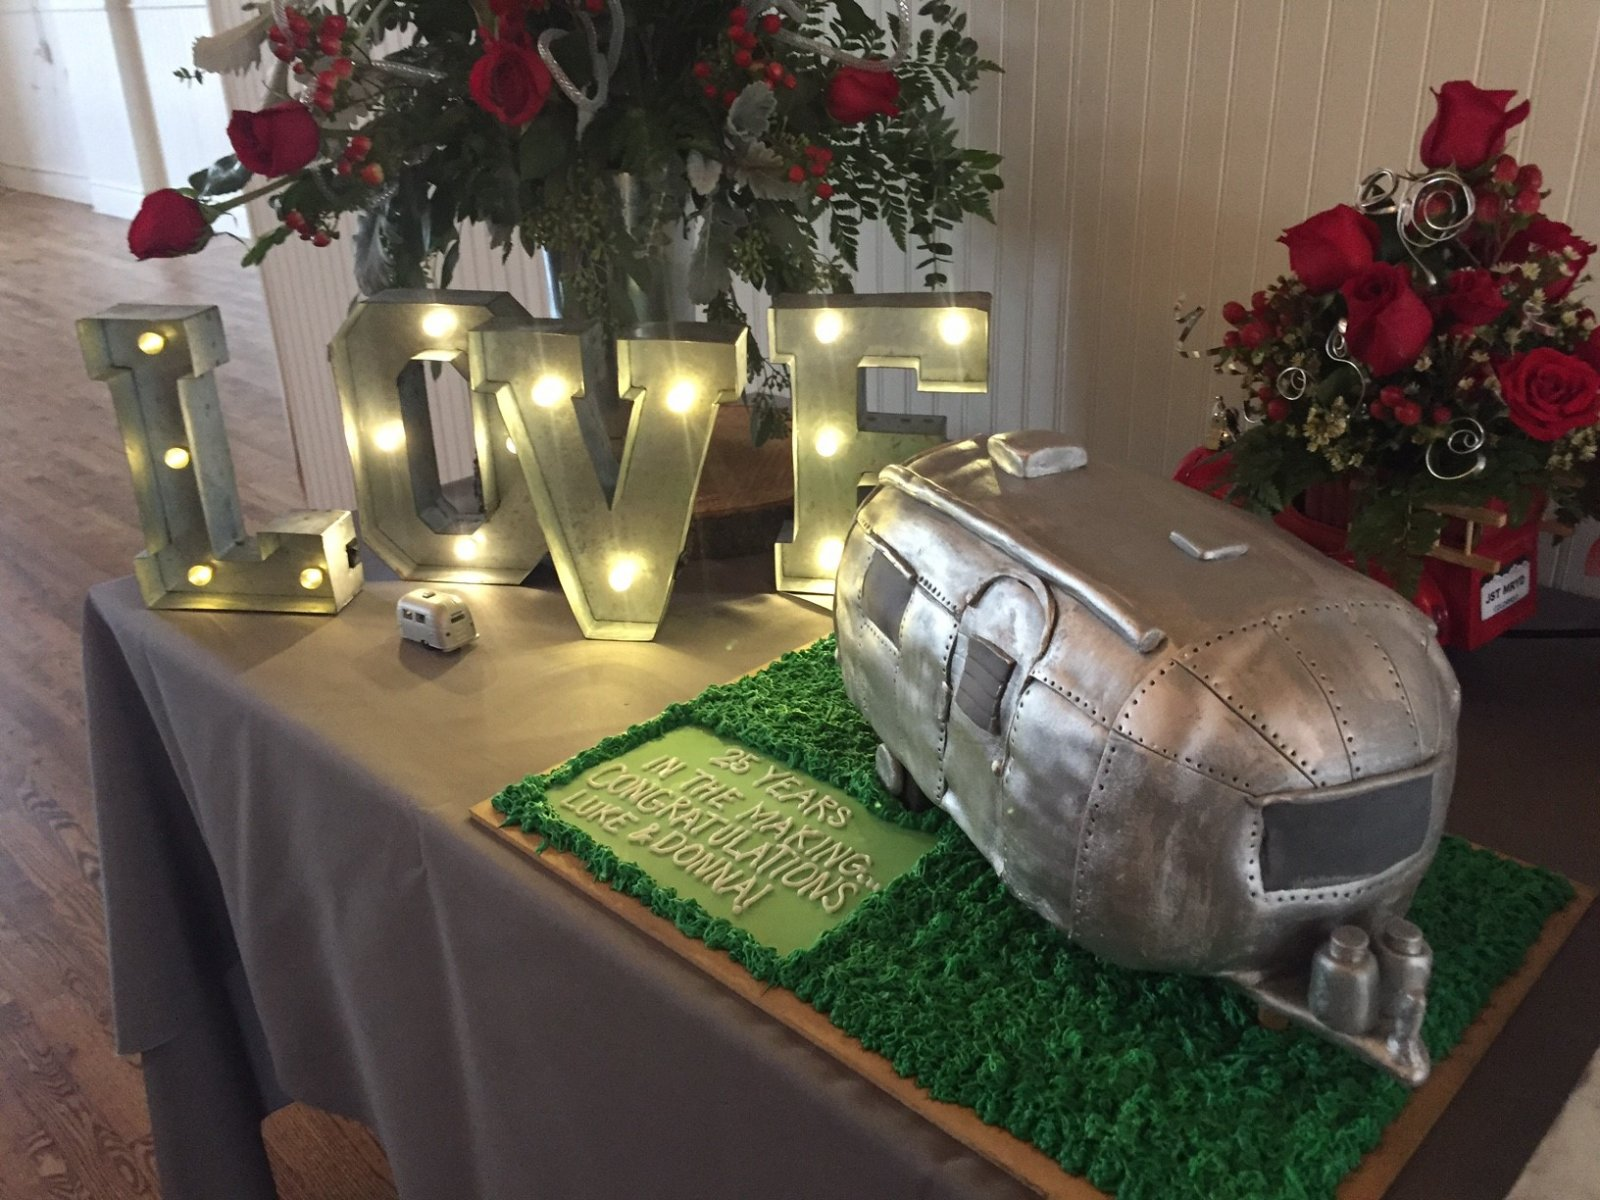 Click image for larger version  Name:Airstream Wedding Cake-4.jpg Views:34 Size:302.3 KB ID:274587